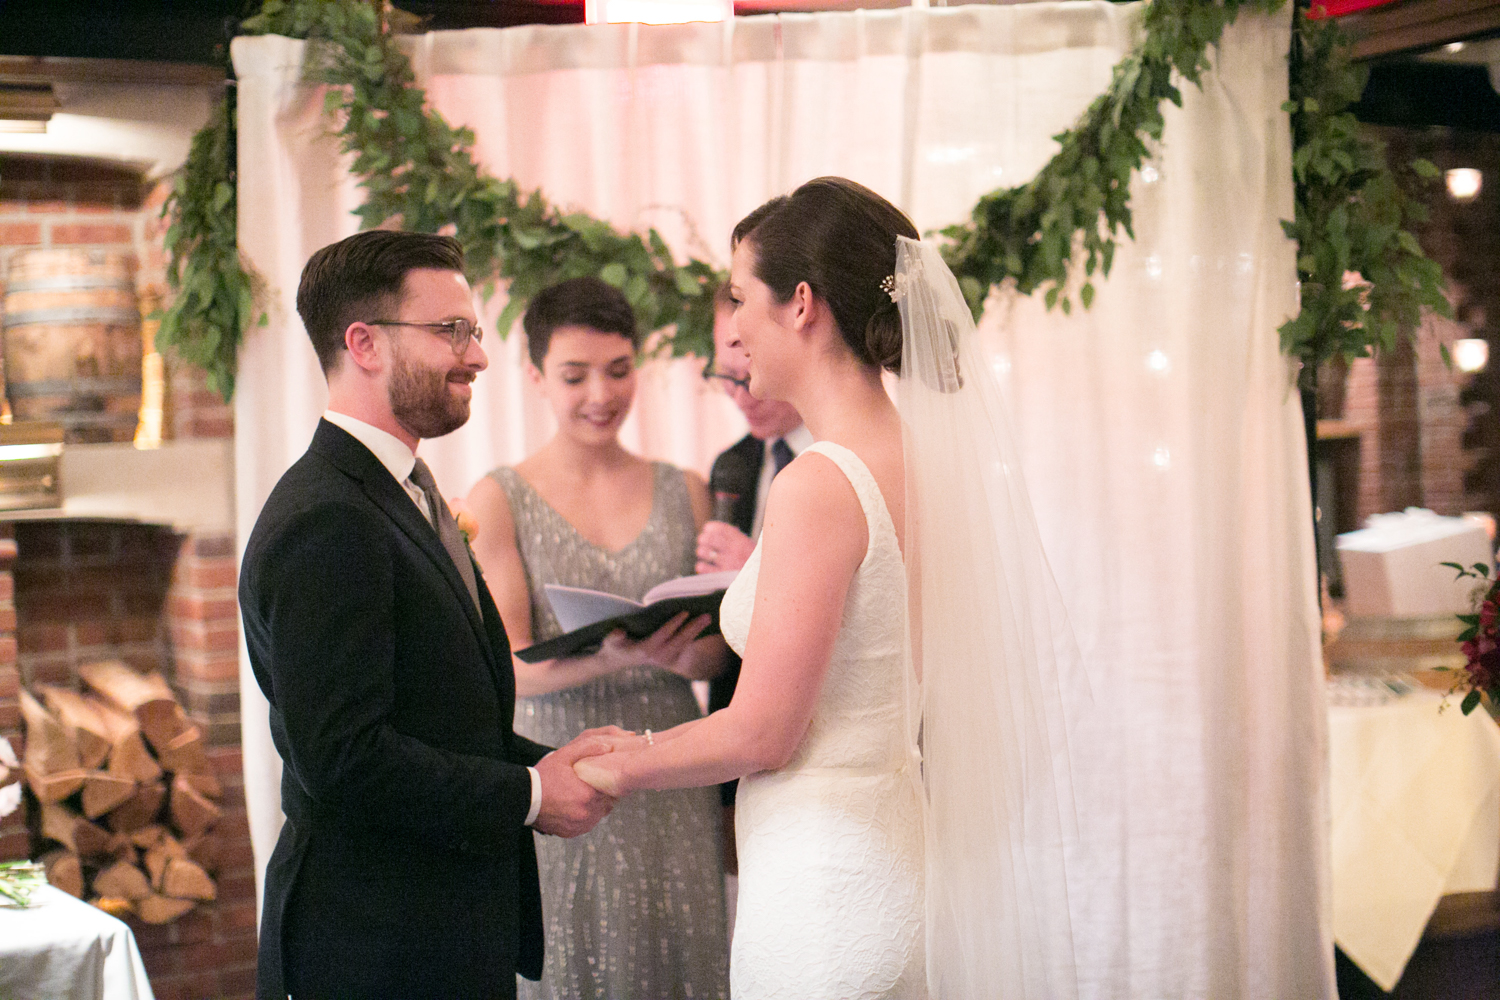 NYC Bride and groom exchange wedding vows